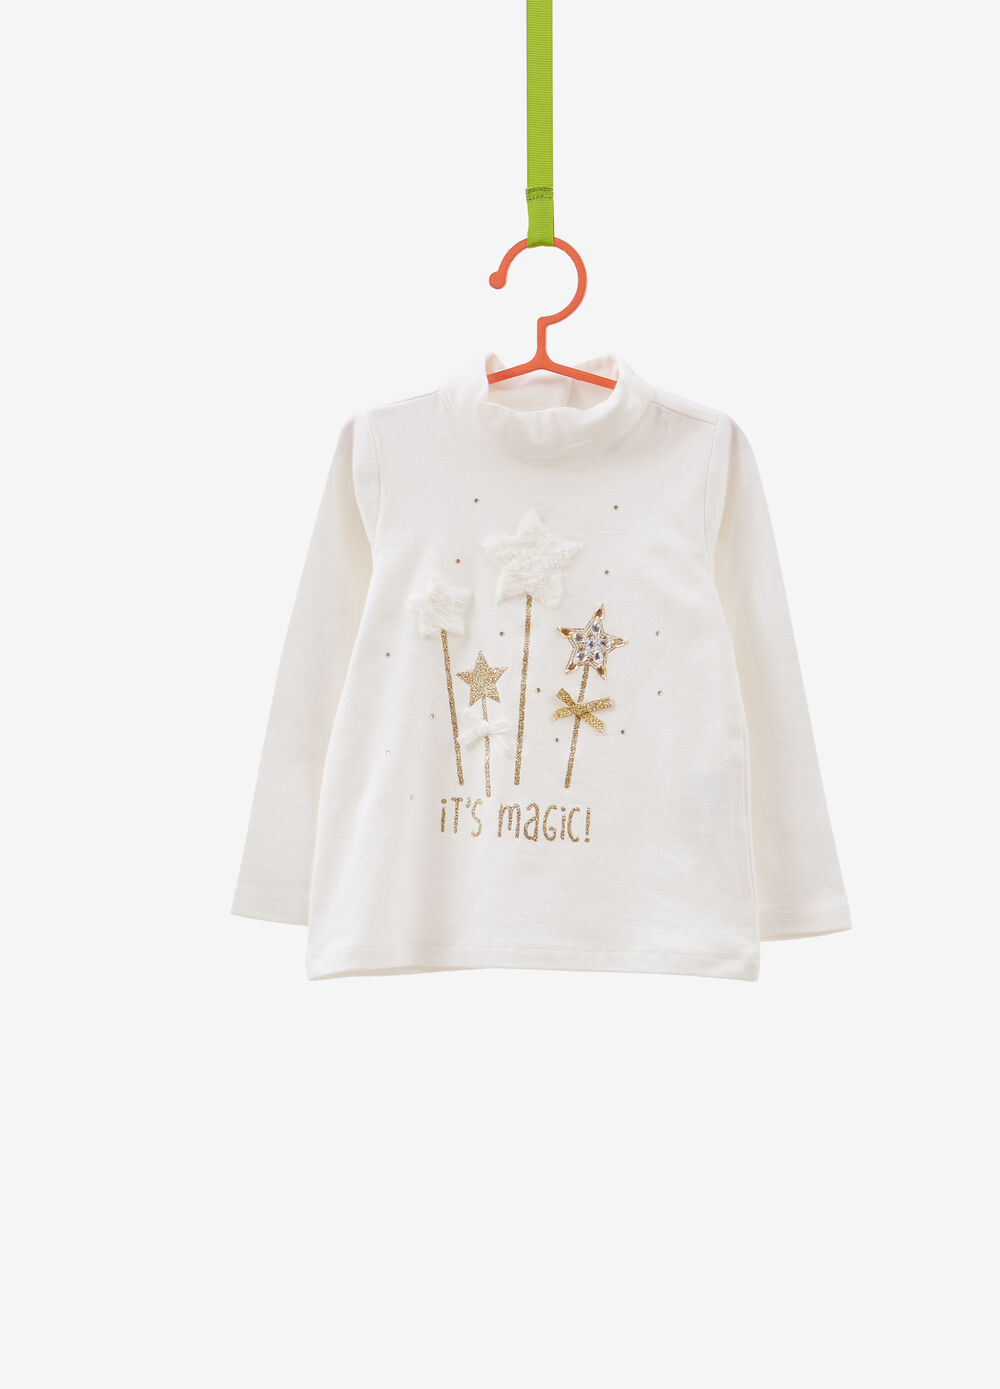 T-shirt in stretch cotton with high neck and diamantés